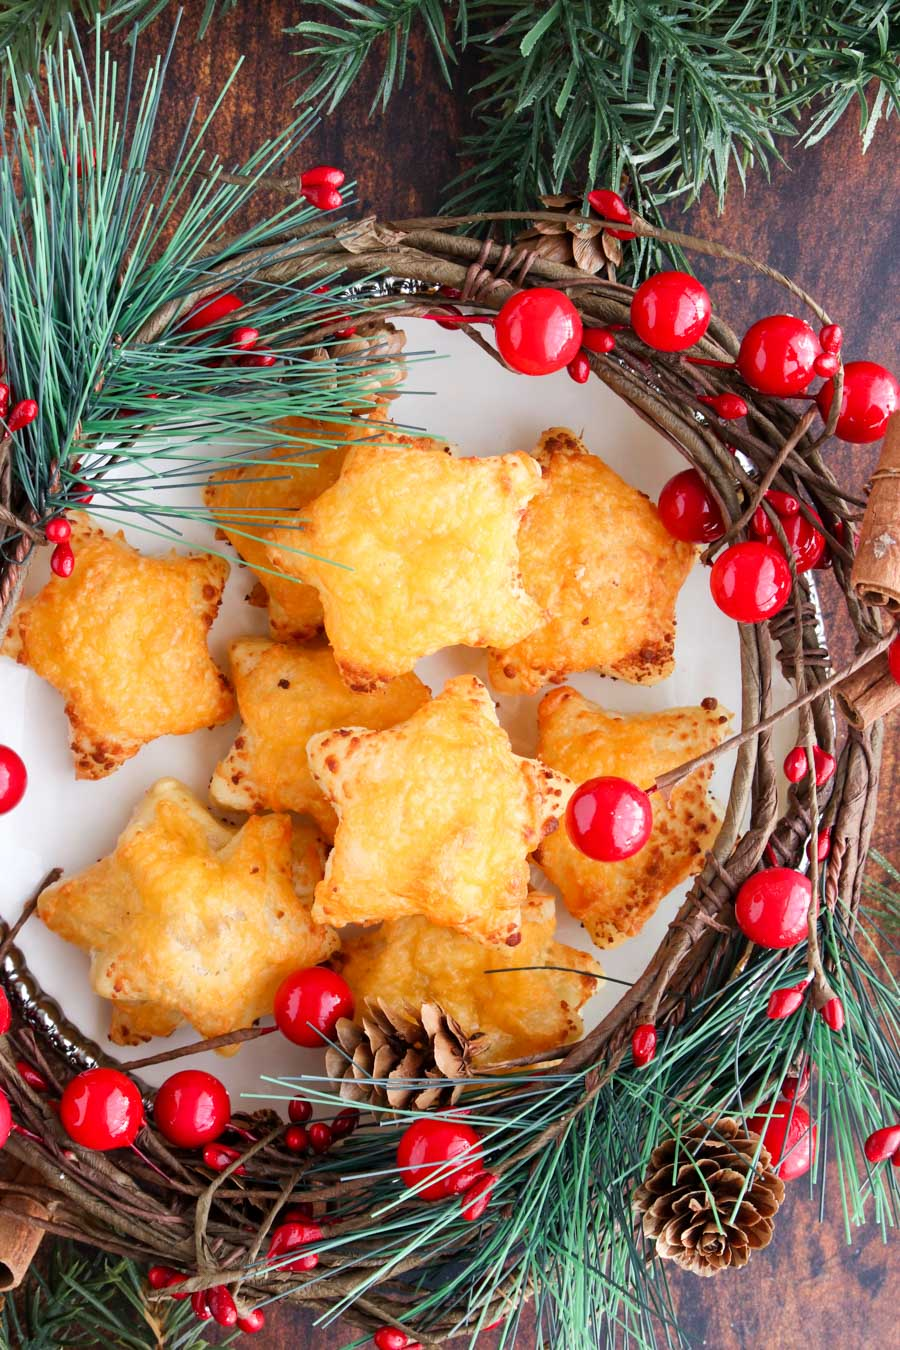 Cheese stars on a play with surrounded by Christmas decorations of holly and pine